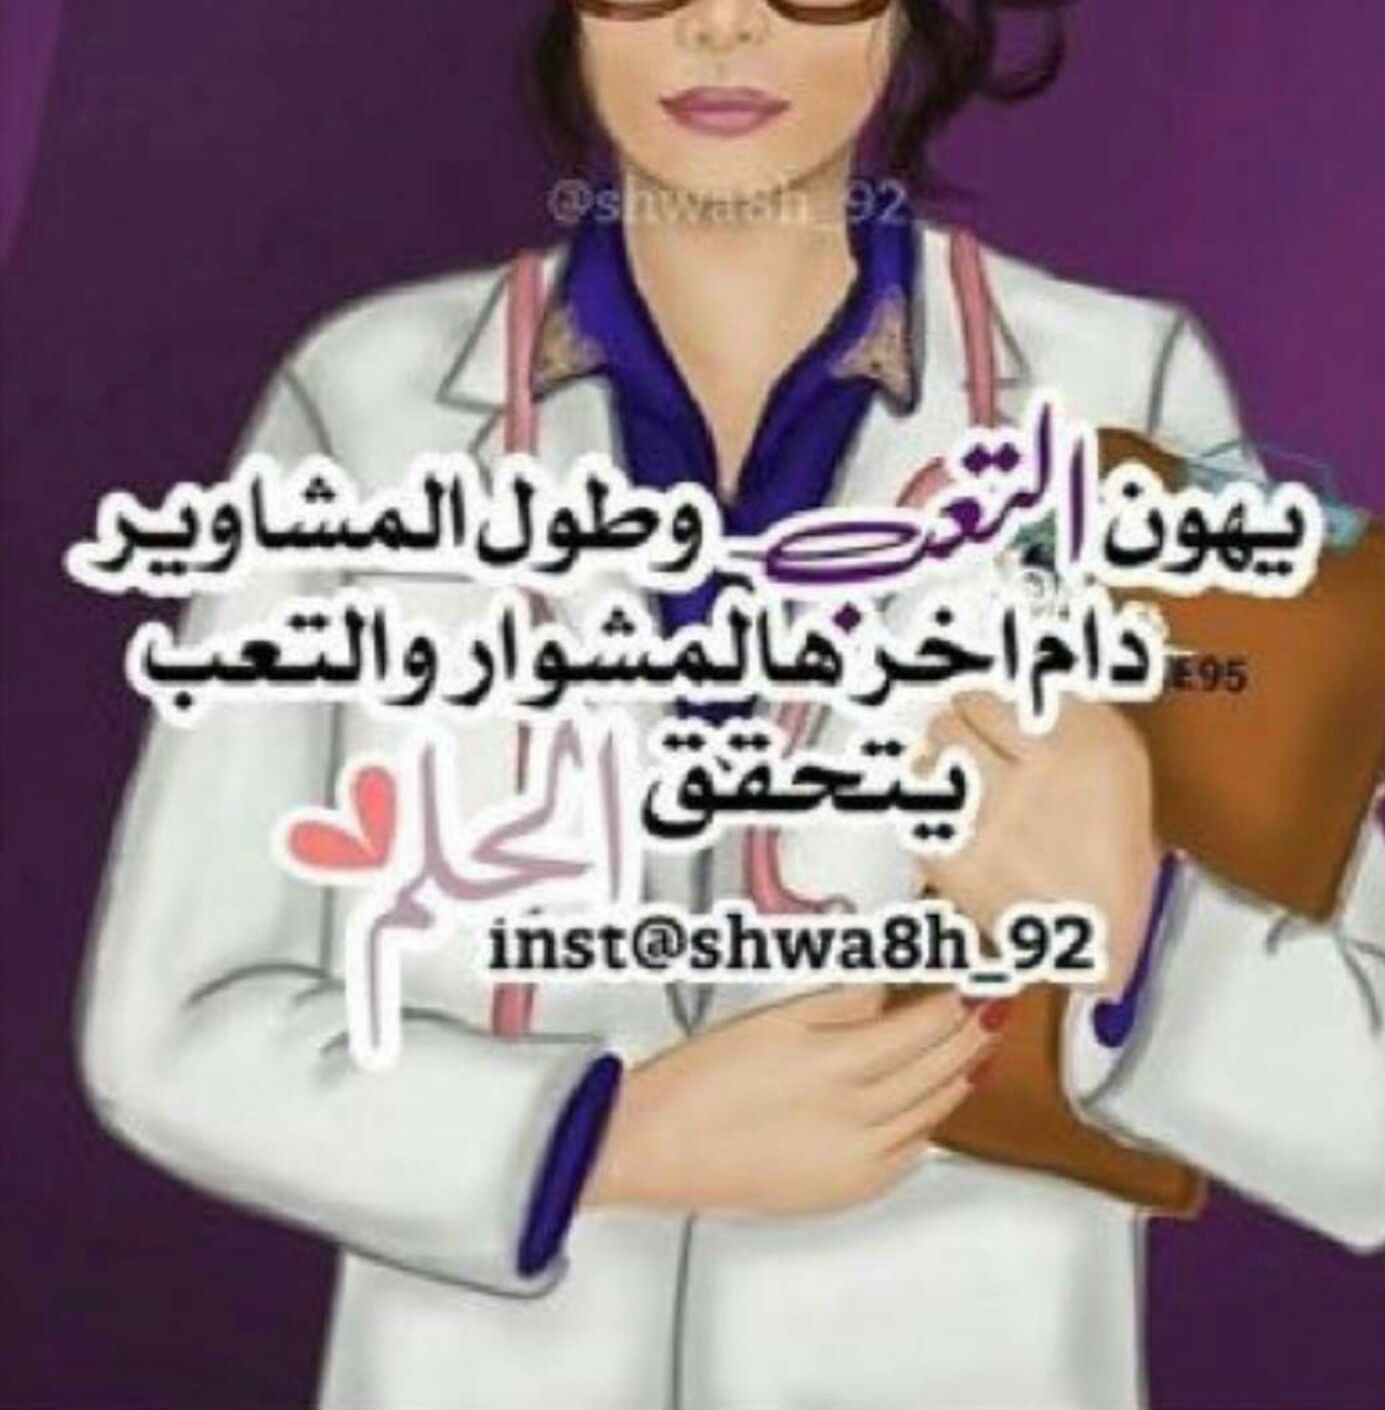 Pin By مواليه الزينبيه On متفرقات Miscellaneous Study Motivation Quotes Doctor Medical Picture Quotes